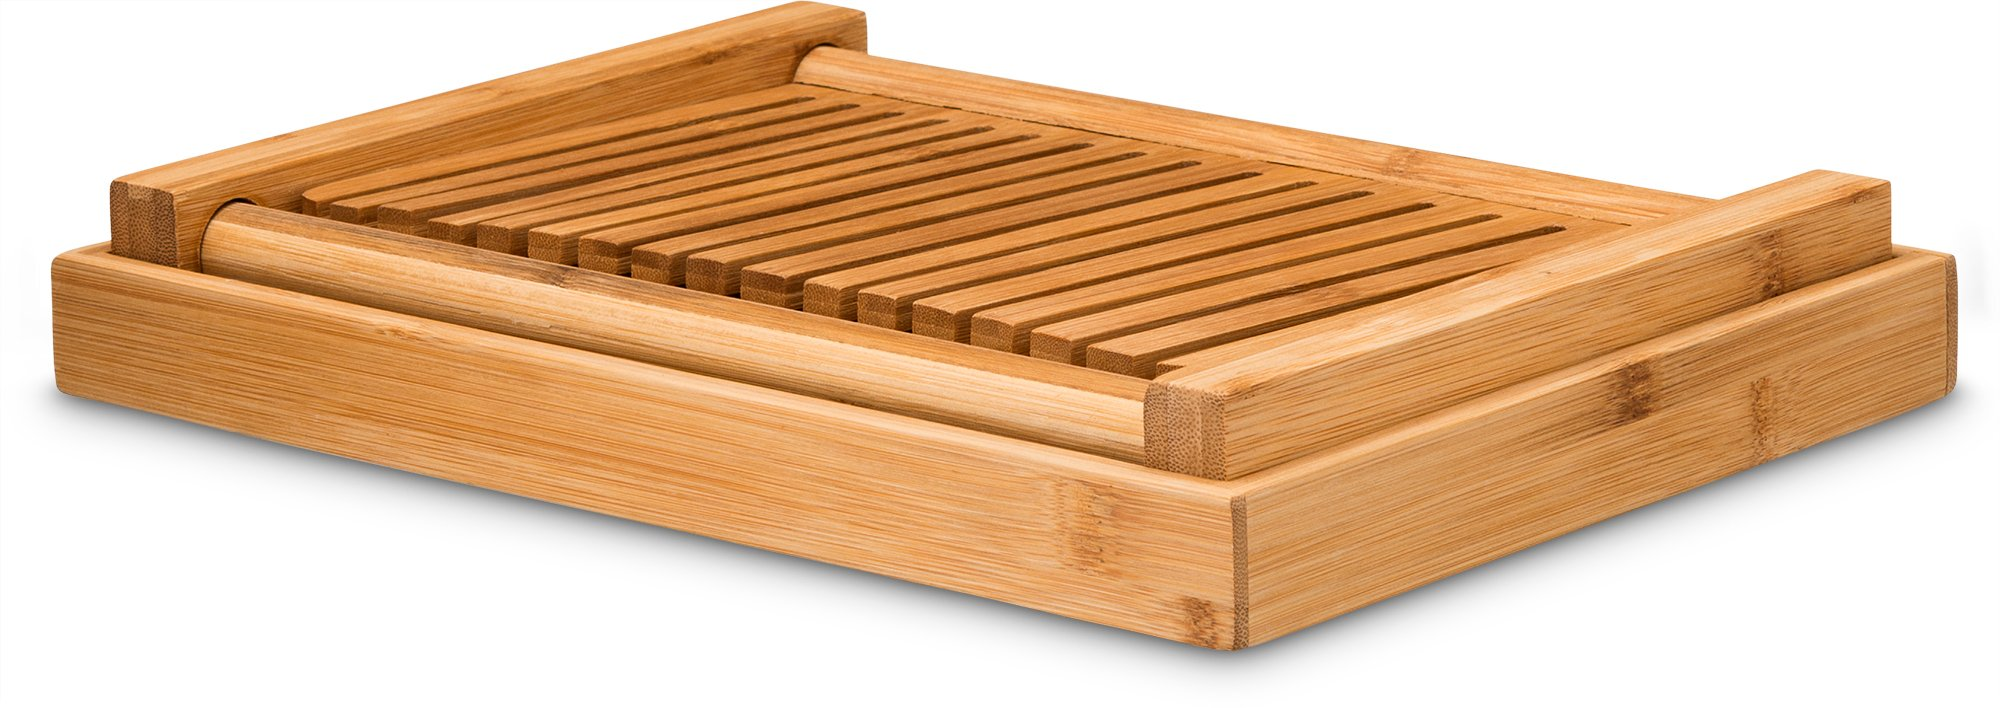 Bamboo Foldable Bread Slicer With Crumb Catcher Tray For